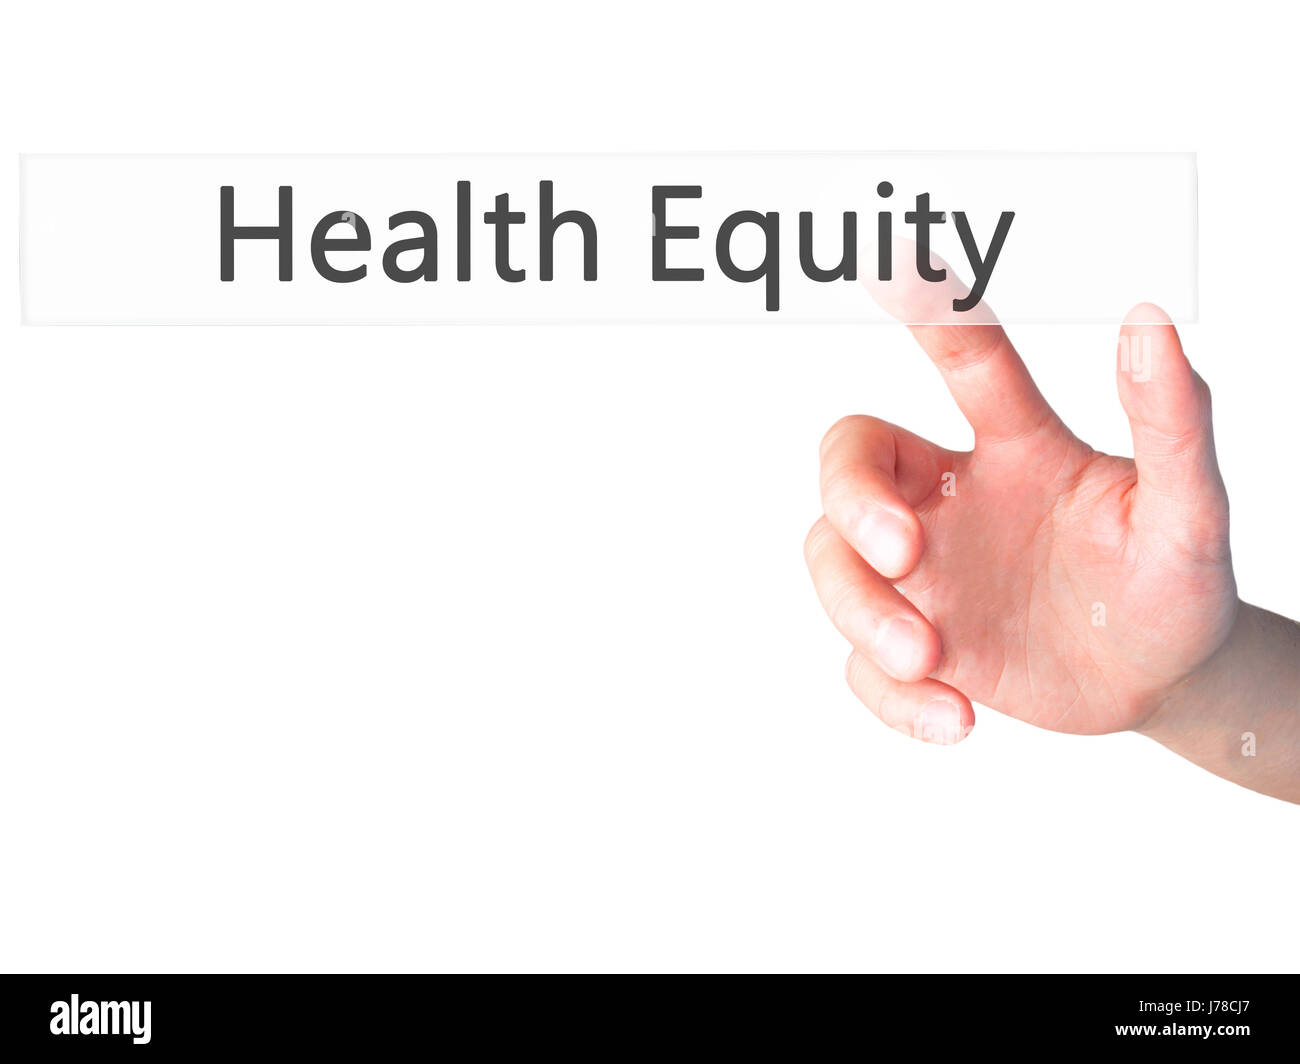 Health Equity - Hand pressing a button on blurred background concept . Business, technology, internet concept. Stock - Stock Image